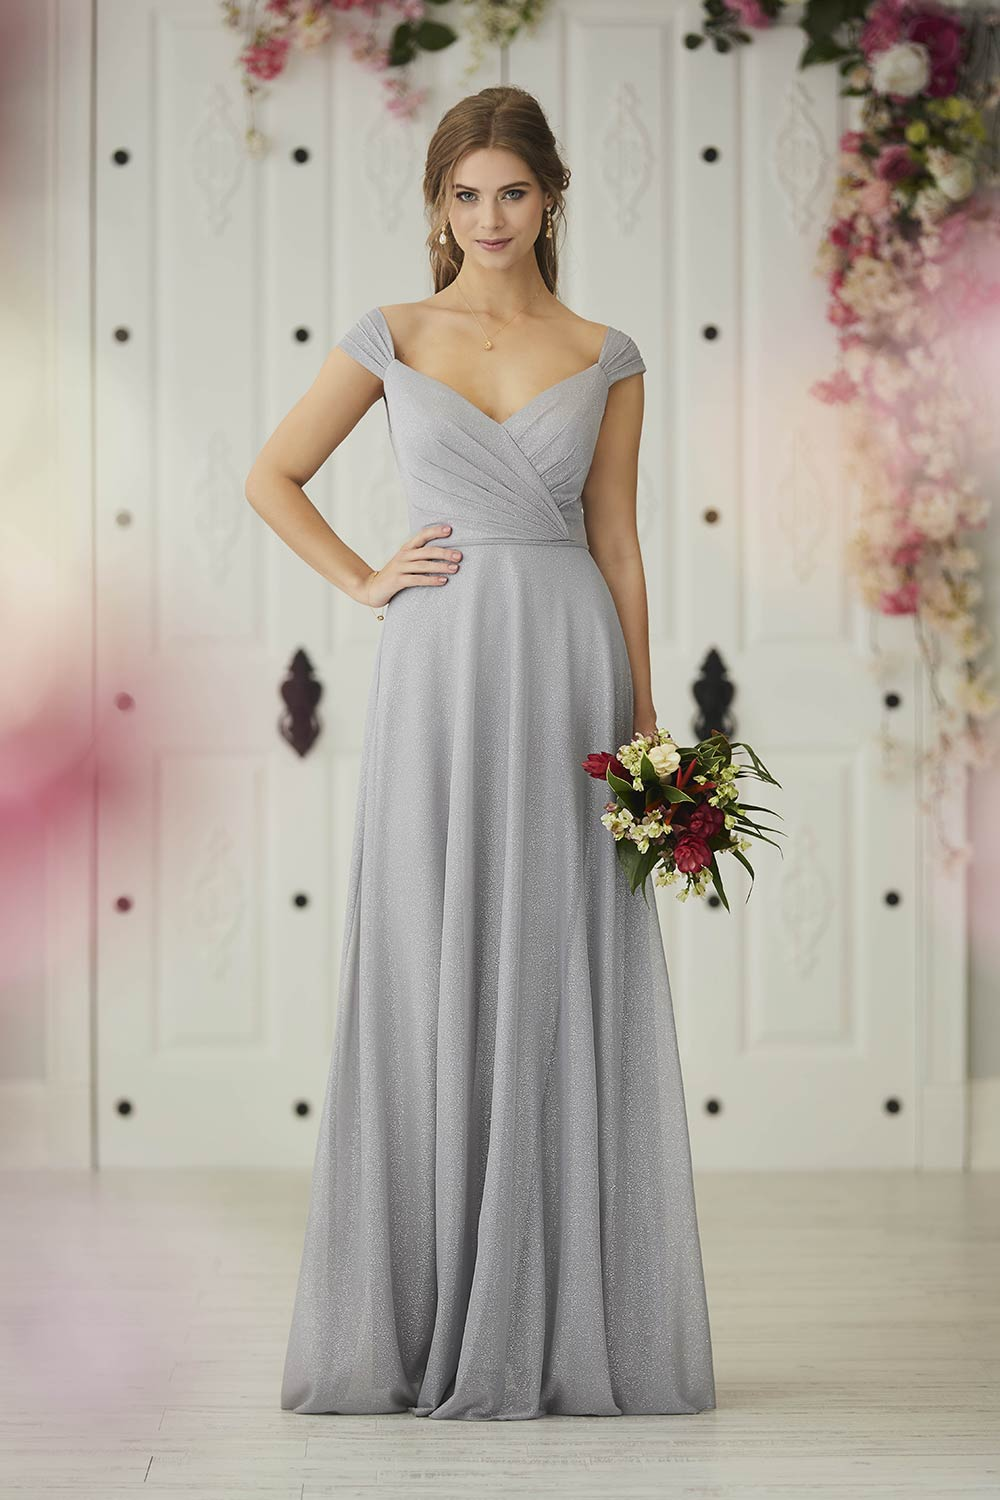 bridesmaid-dresses-jacquelin-bridals-canada-27298